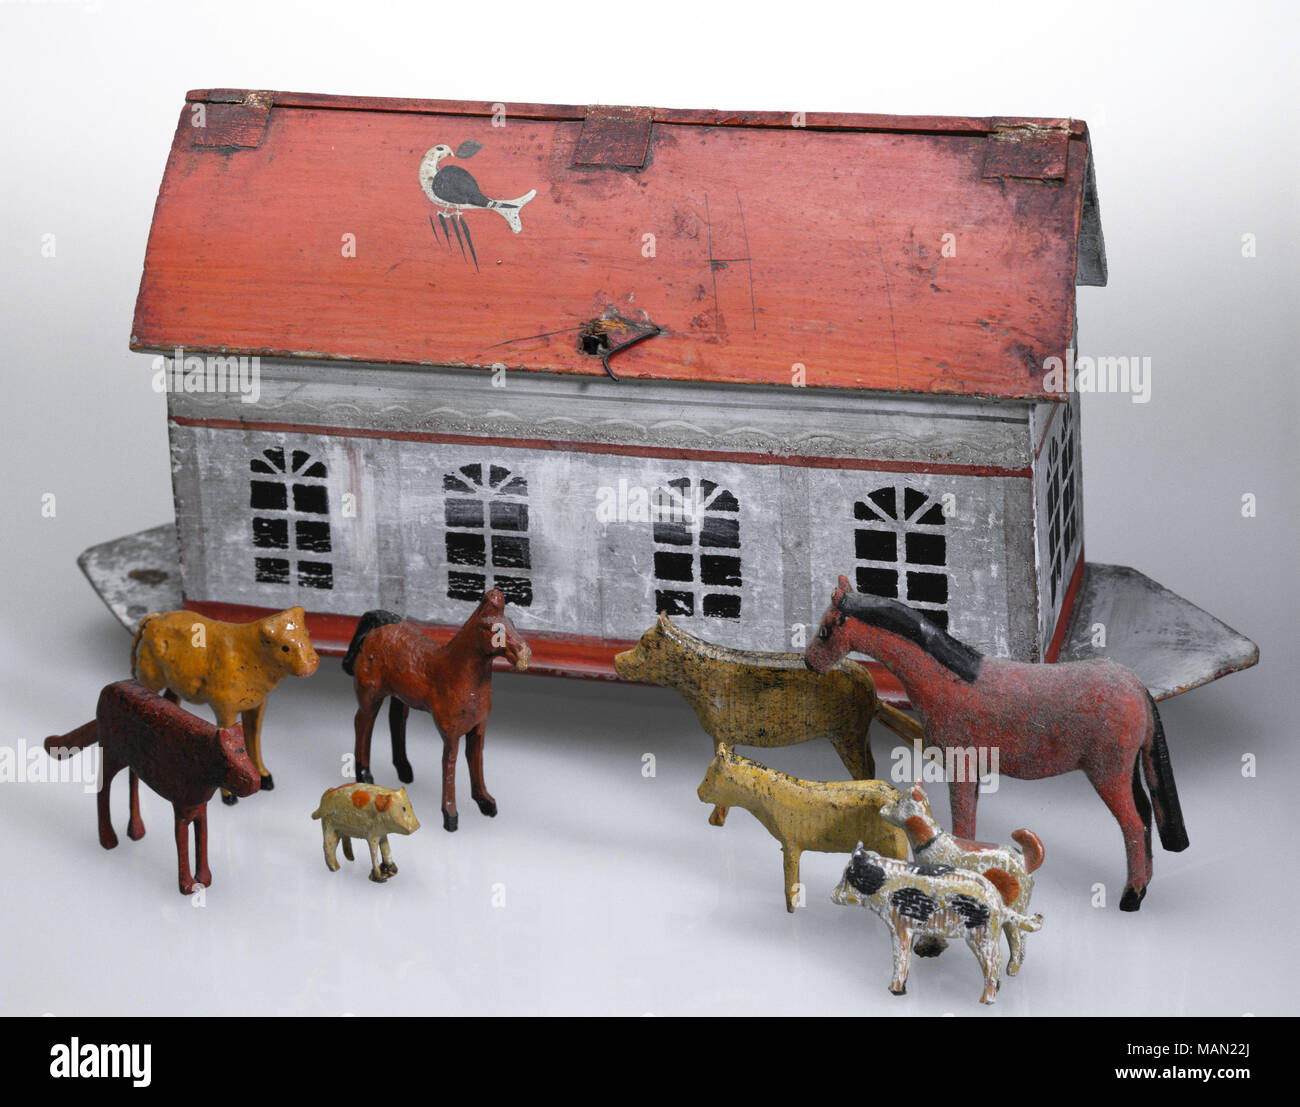 Wooden Toy Noahs Ark With Carved Wooden Animals Made In Germany